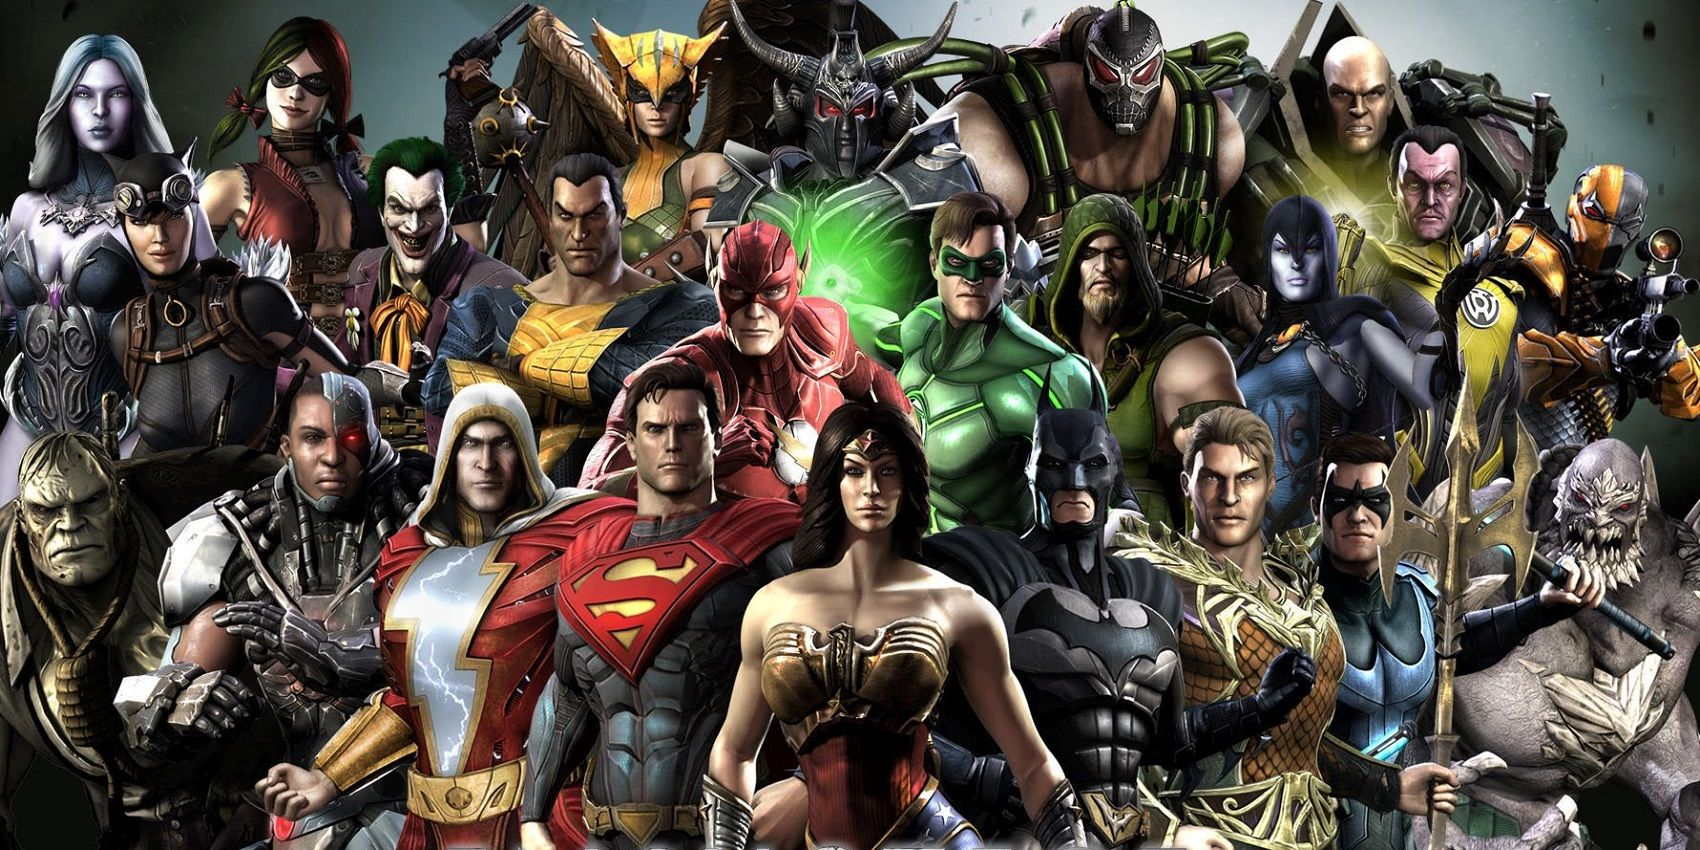 injustice 2 character roster complete list of mobile and console